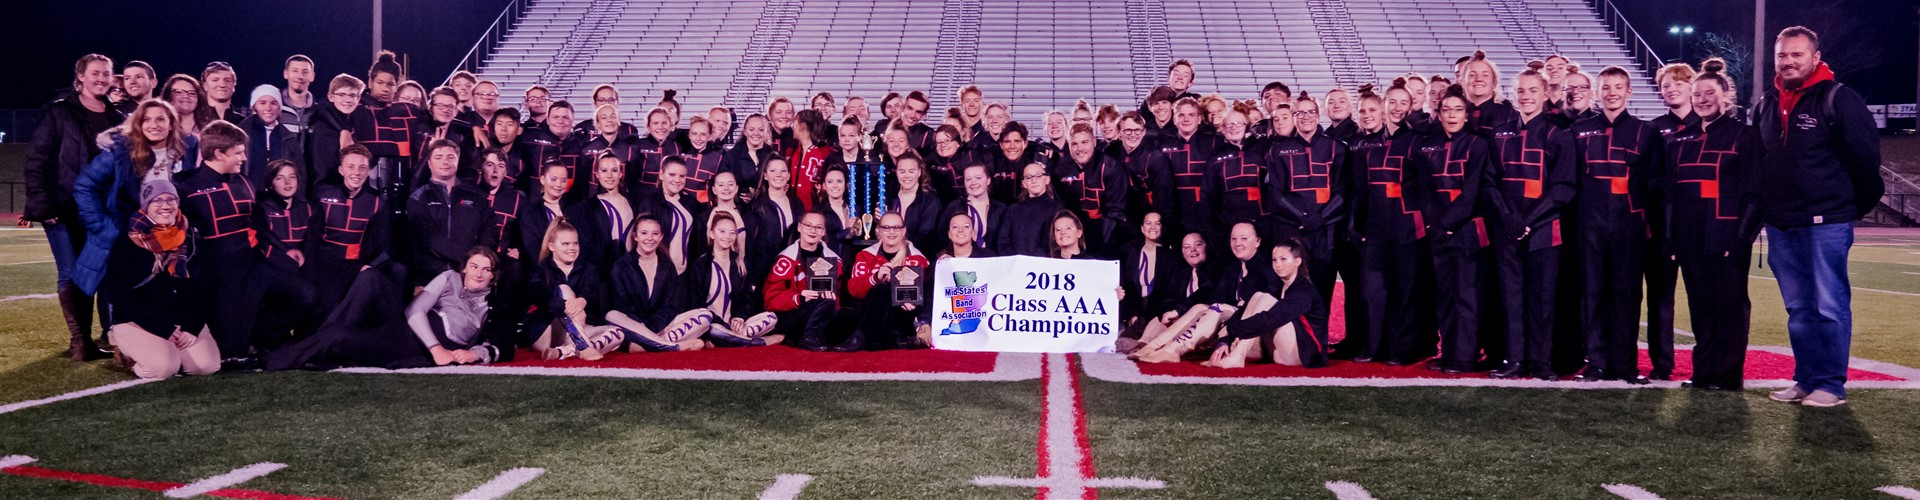 The New Palestine Marching Dragons earned the Class AAA Championship at the 2018 Mid-States Contest